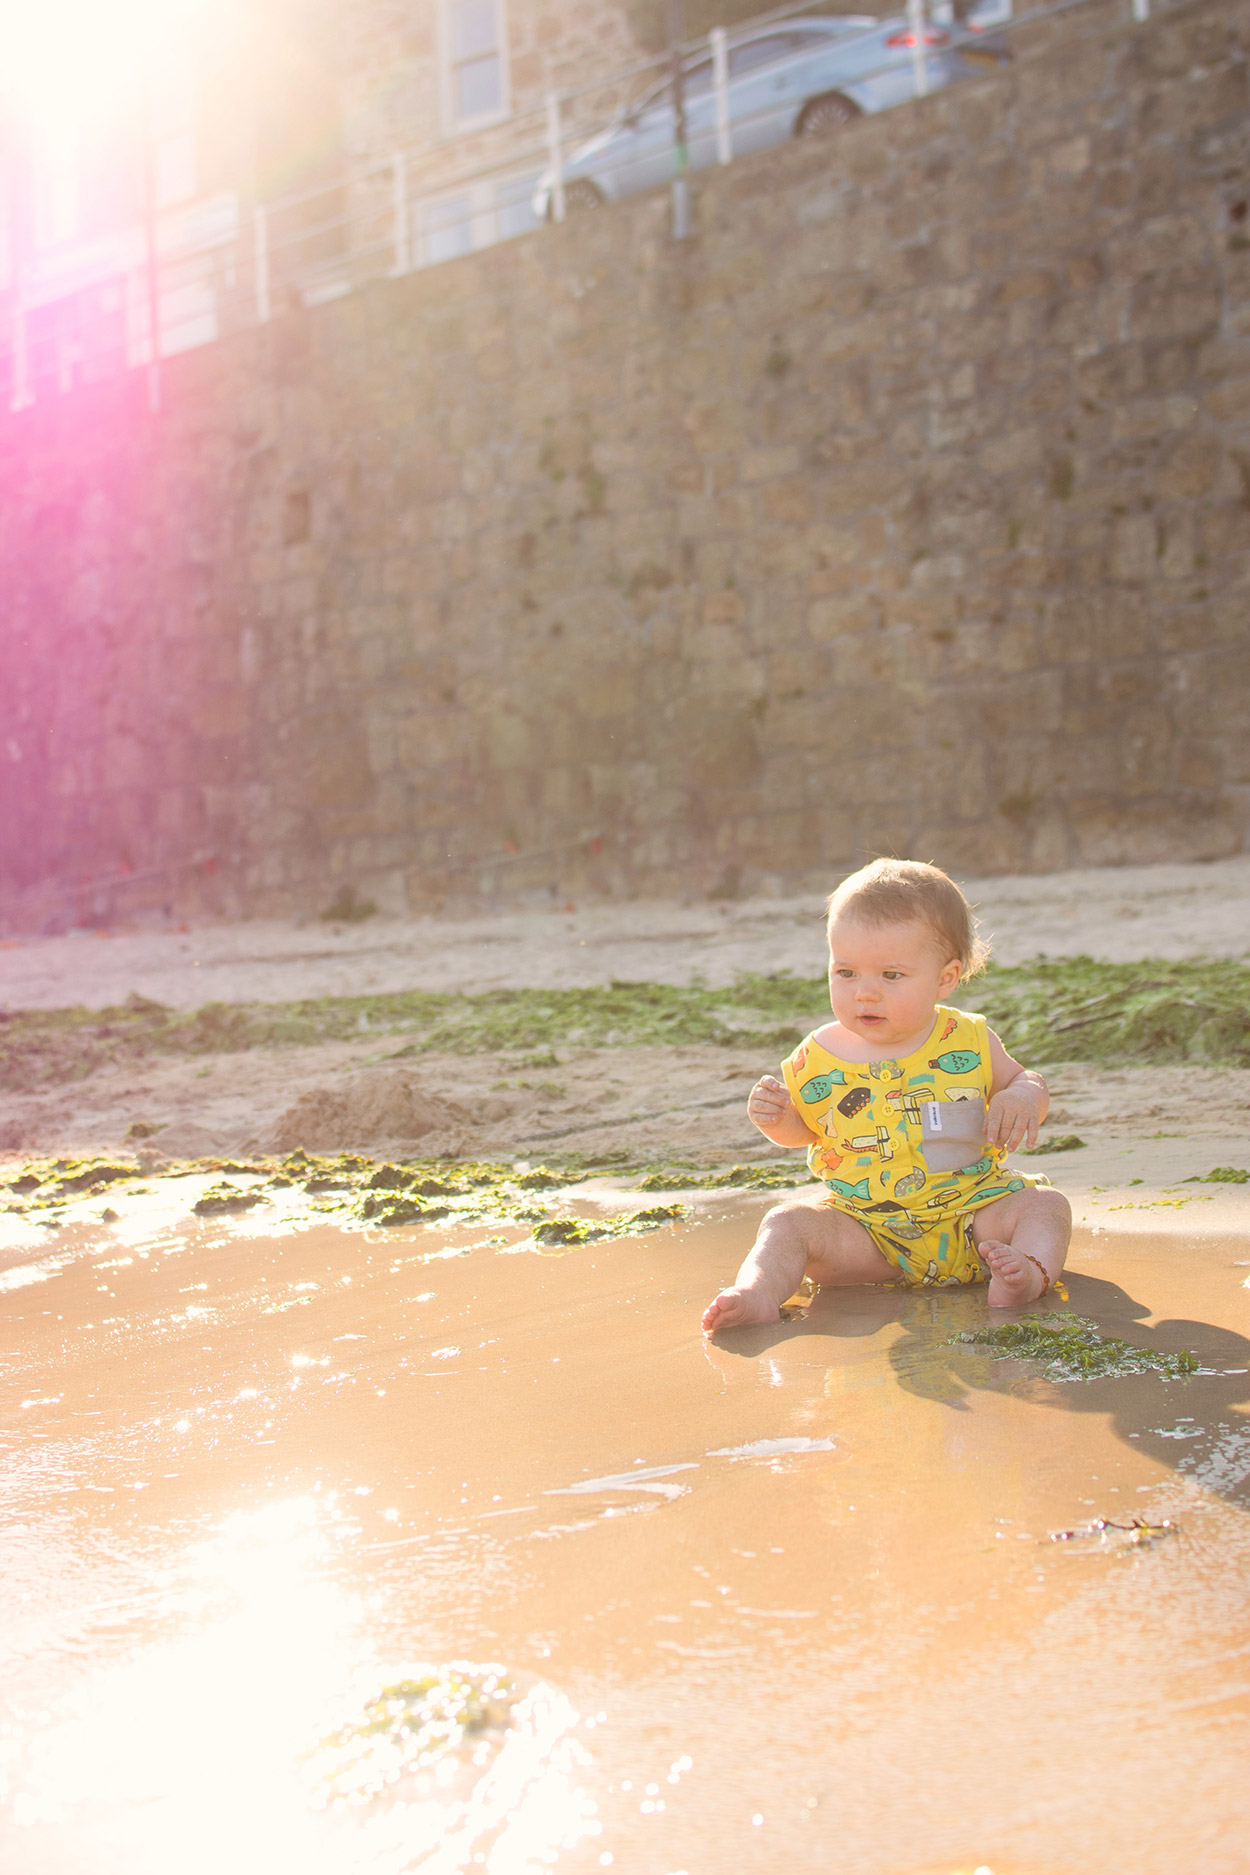 The Sand Between Your Toes {To Adventure #2} - 11 month old baby boy wearing Sushi Indikidual playsuit from Alex and Alexa sitting on the beach, playing in the sand and sea at Mousehole Harbour near Penzance in West Cornwall